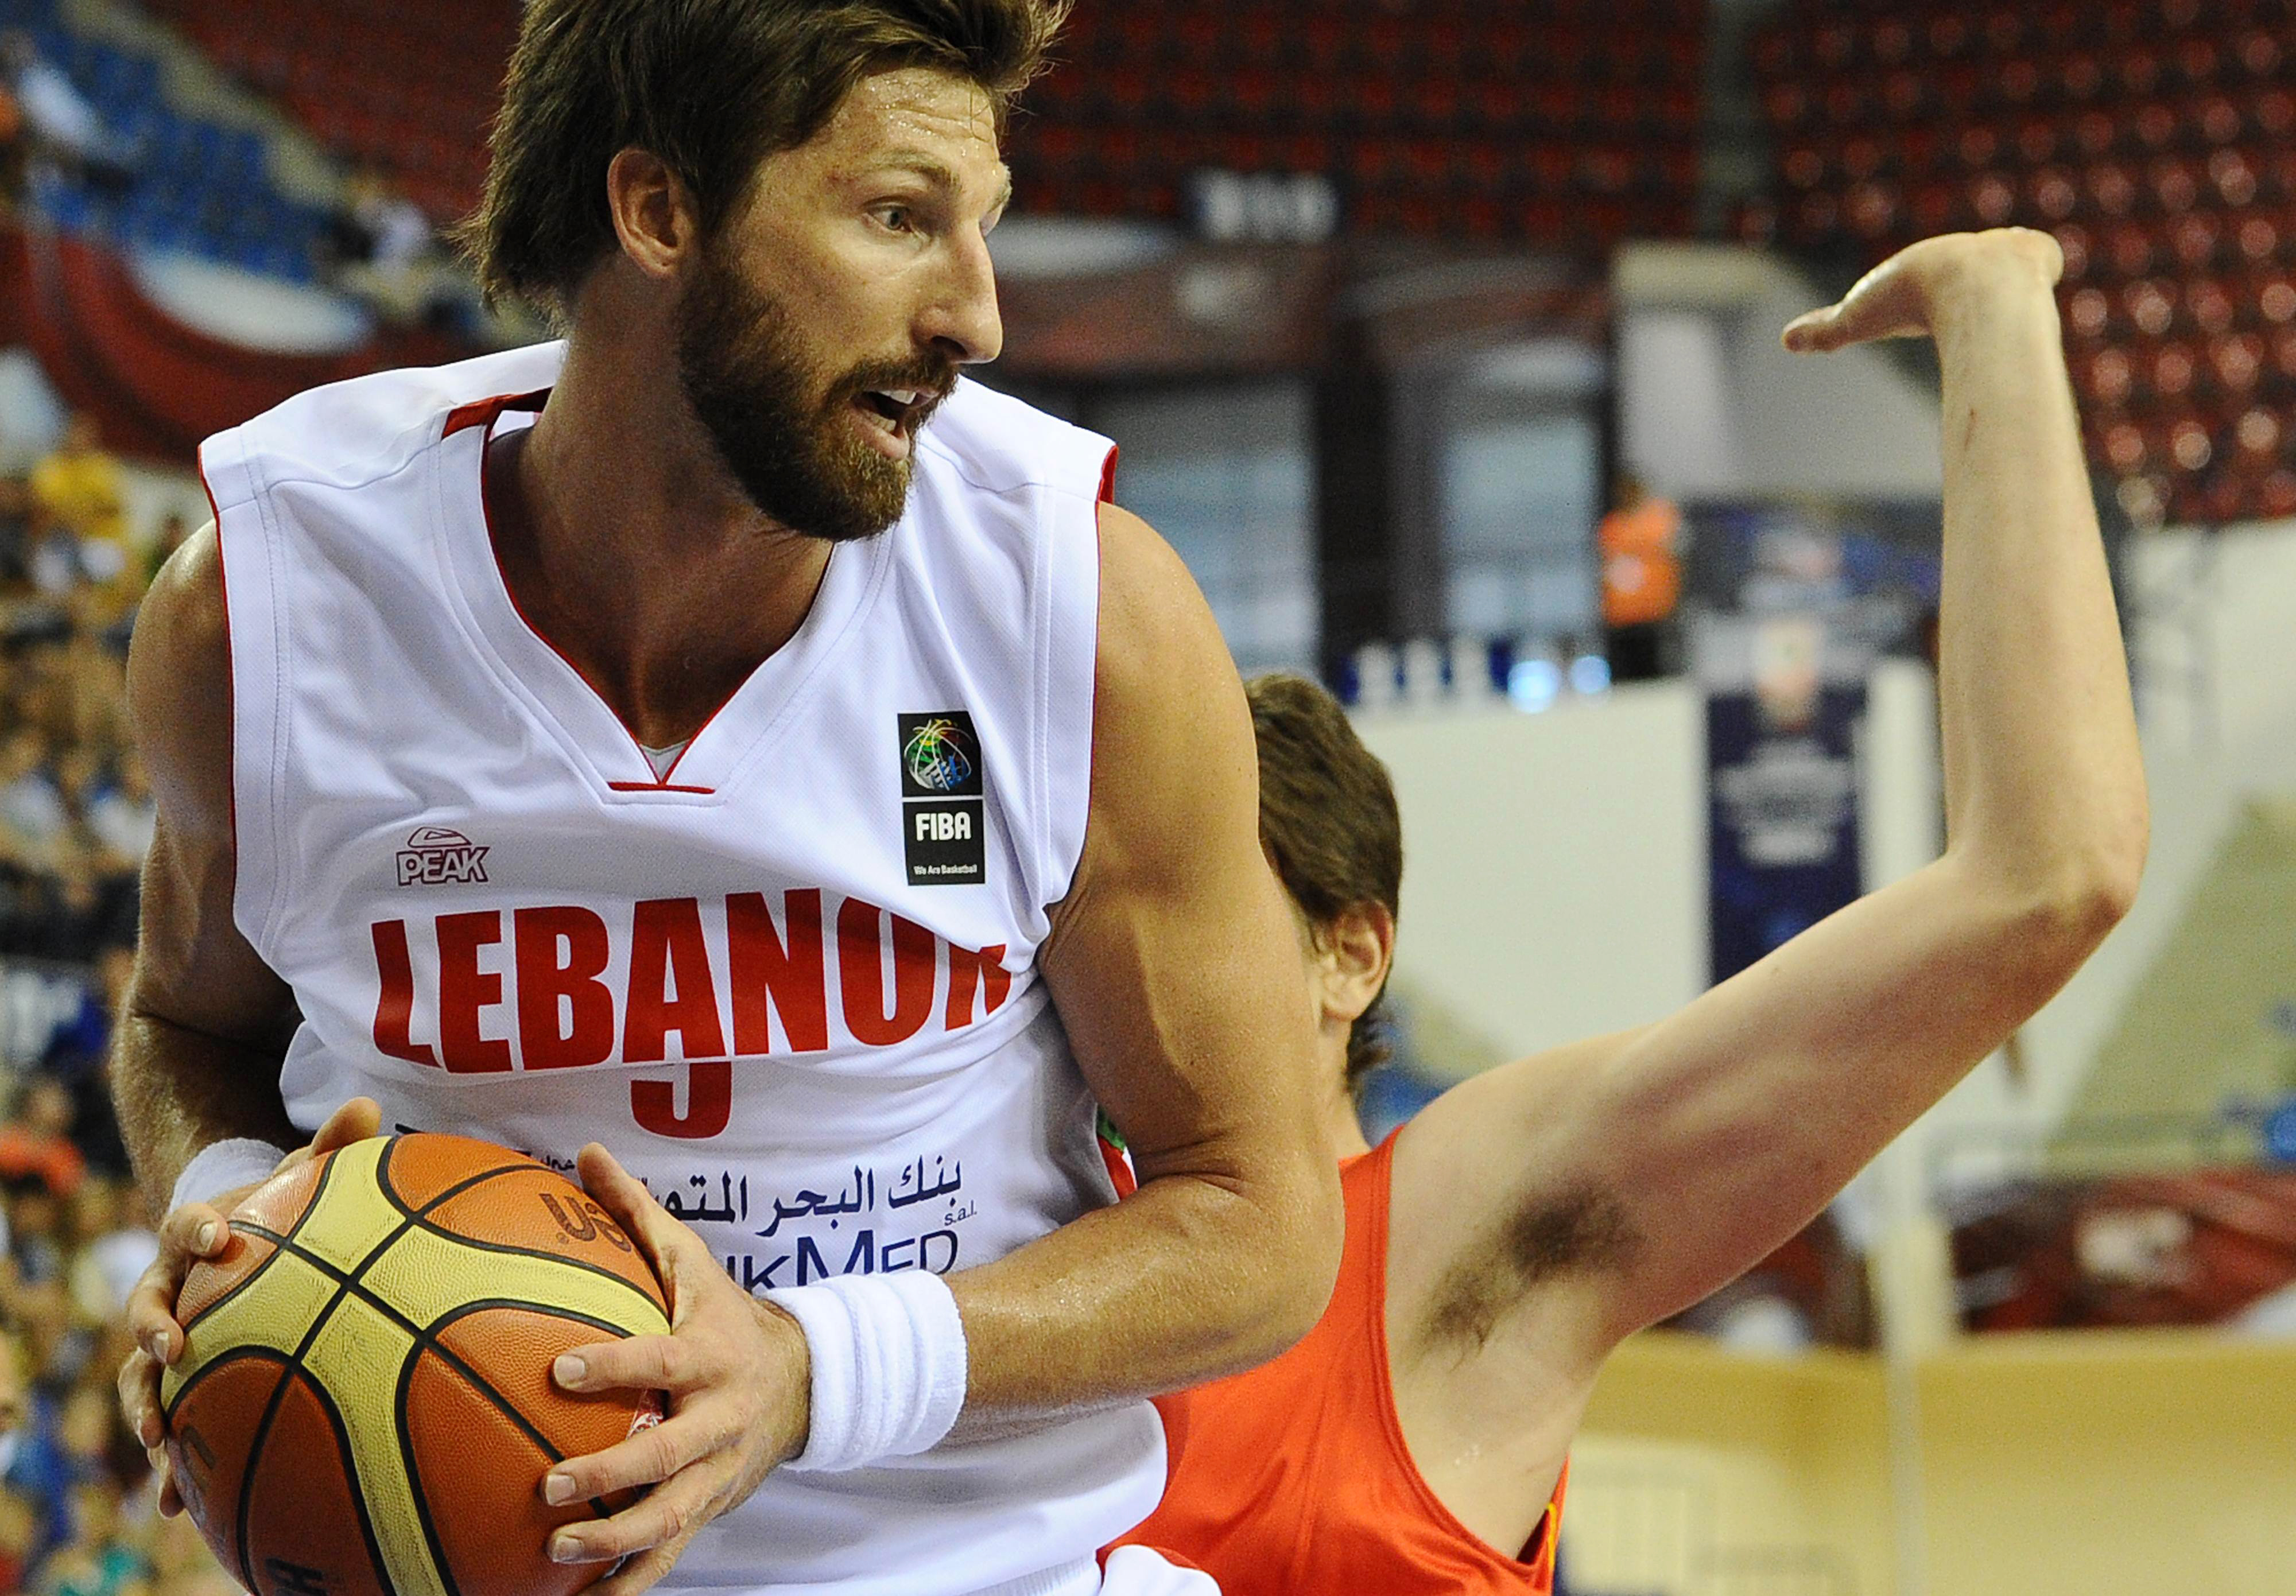 Former Phoenix Suns big man Jackson Vroman while playing for Lebanon in 2010.